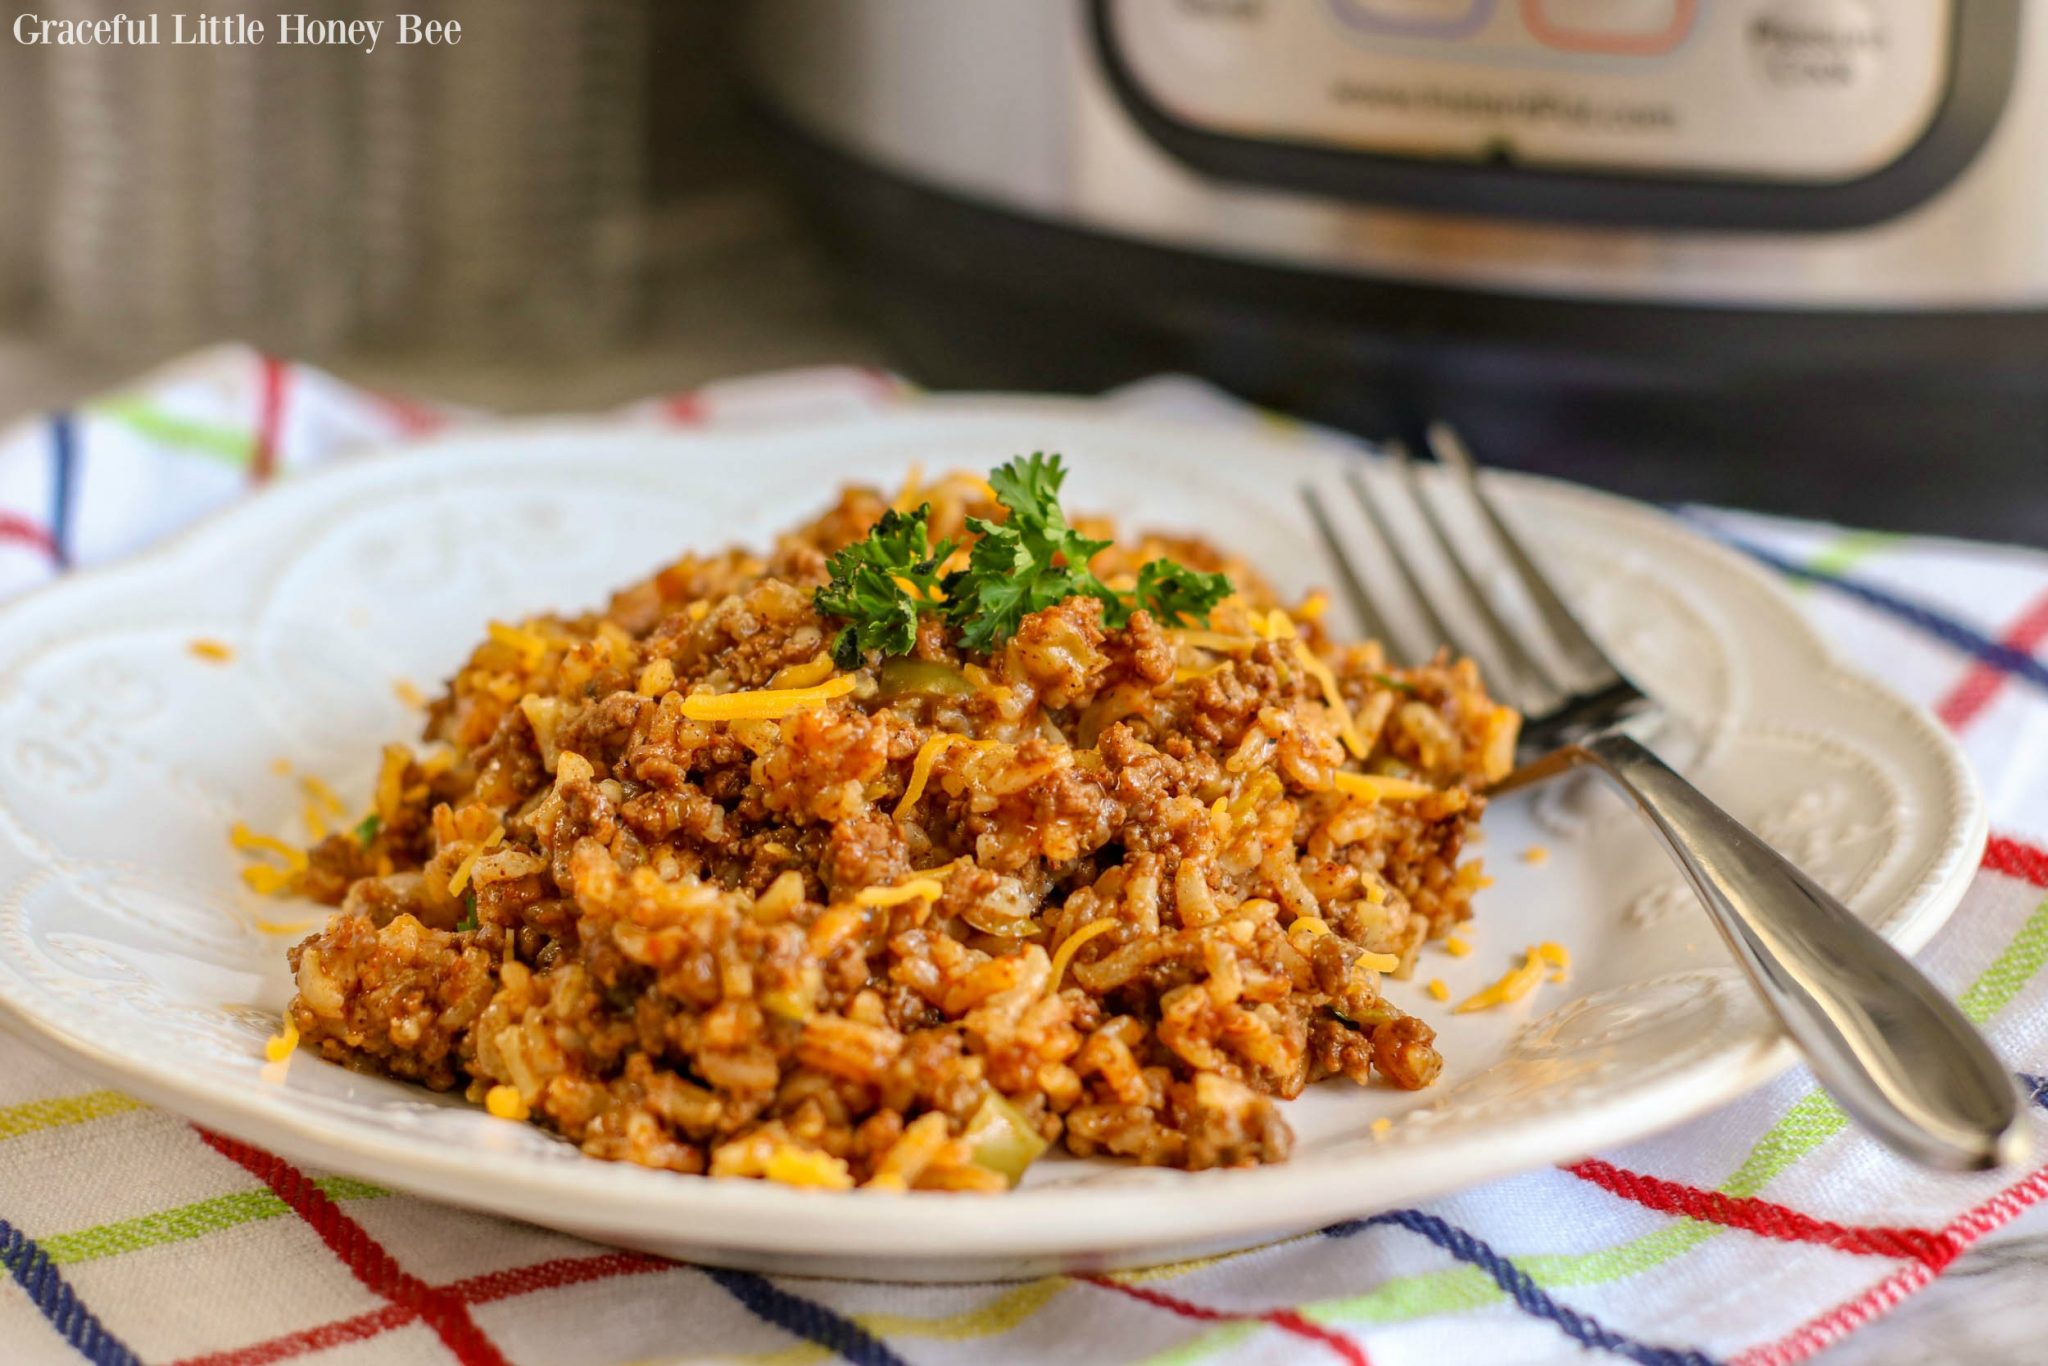 This recipe for Instant Pot Spanish Rice with Beef is full of savory flavor and makes a quick and easy weeknight dinner! Find the recipe on gracefullittlehoneybee.com #instantpot #pressurecooker #recipe #easyrecipes #dinner #beef #rice